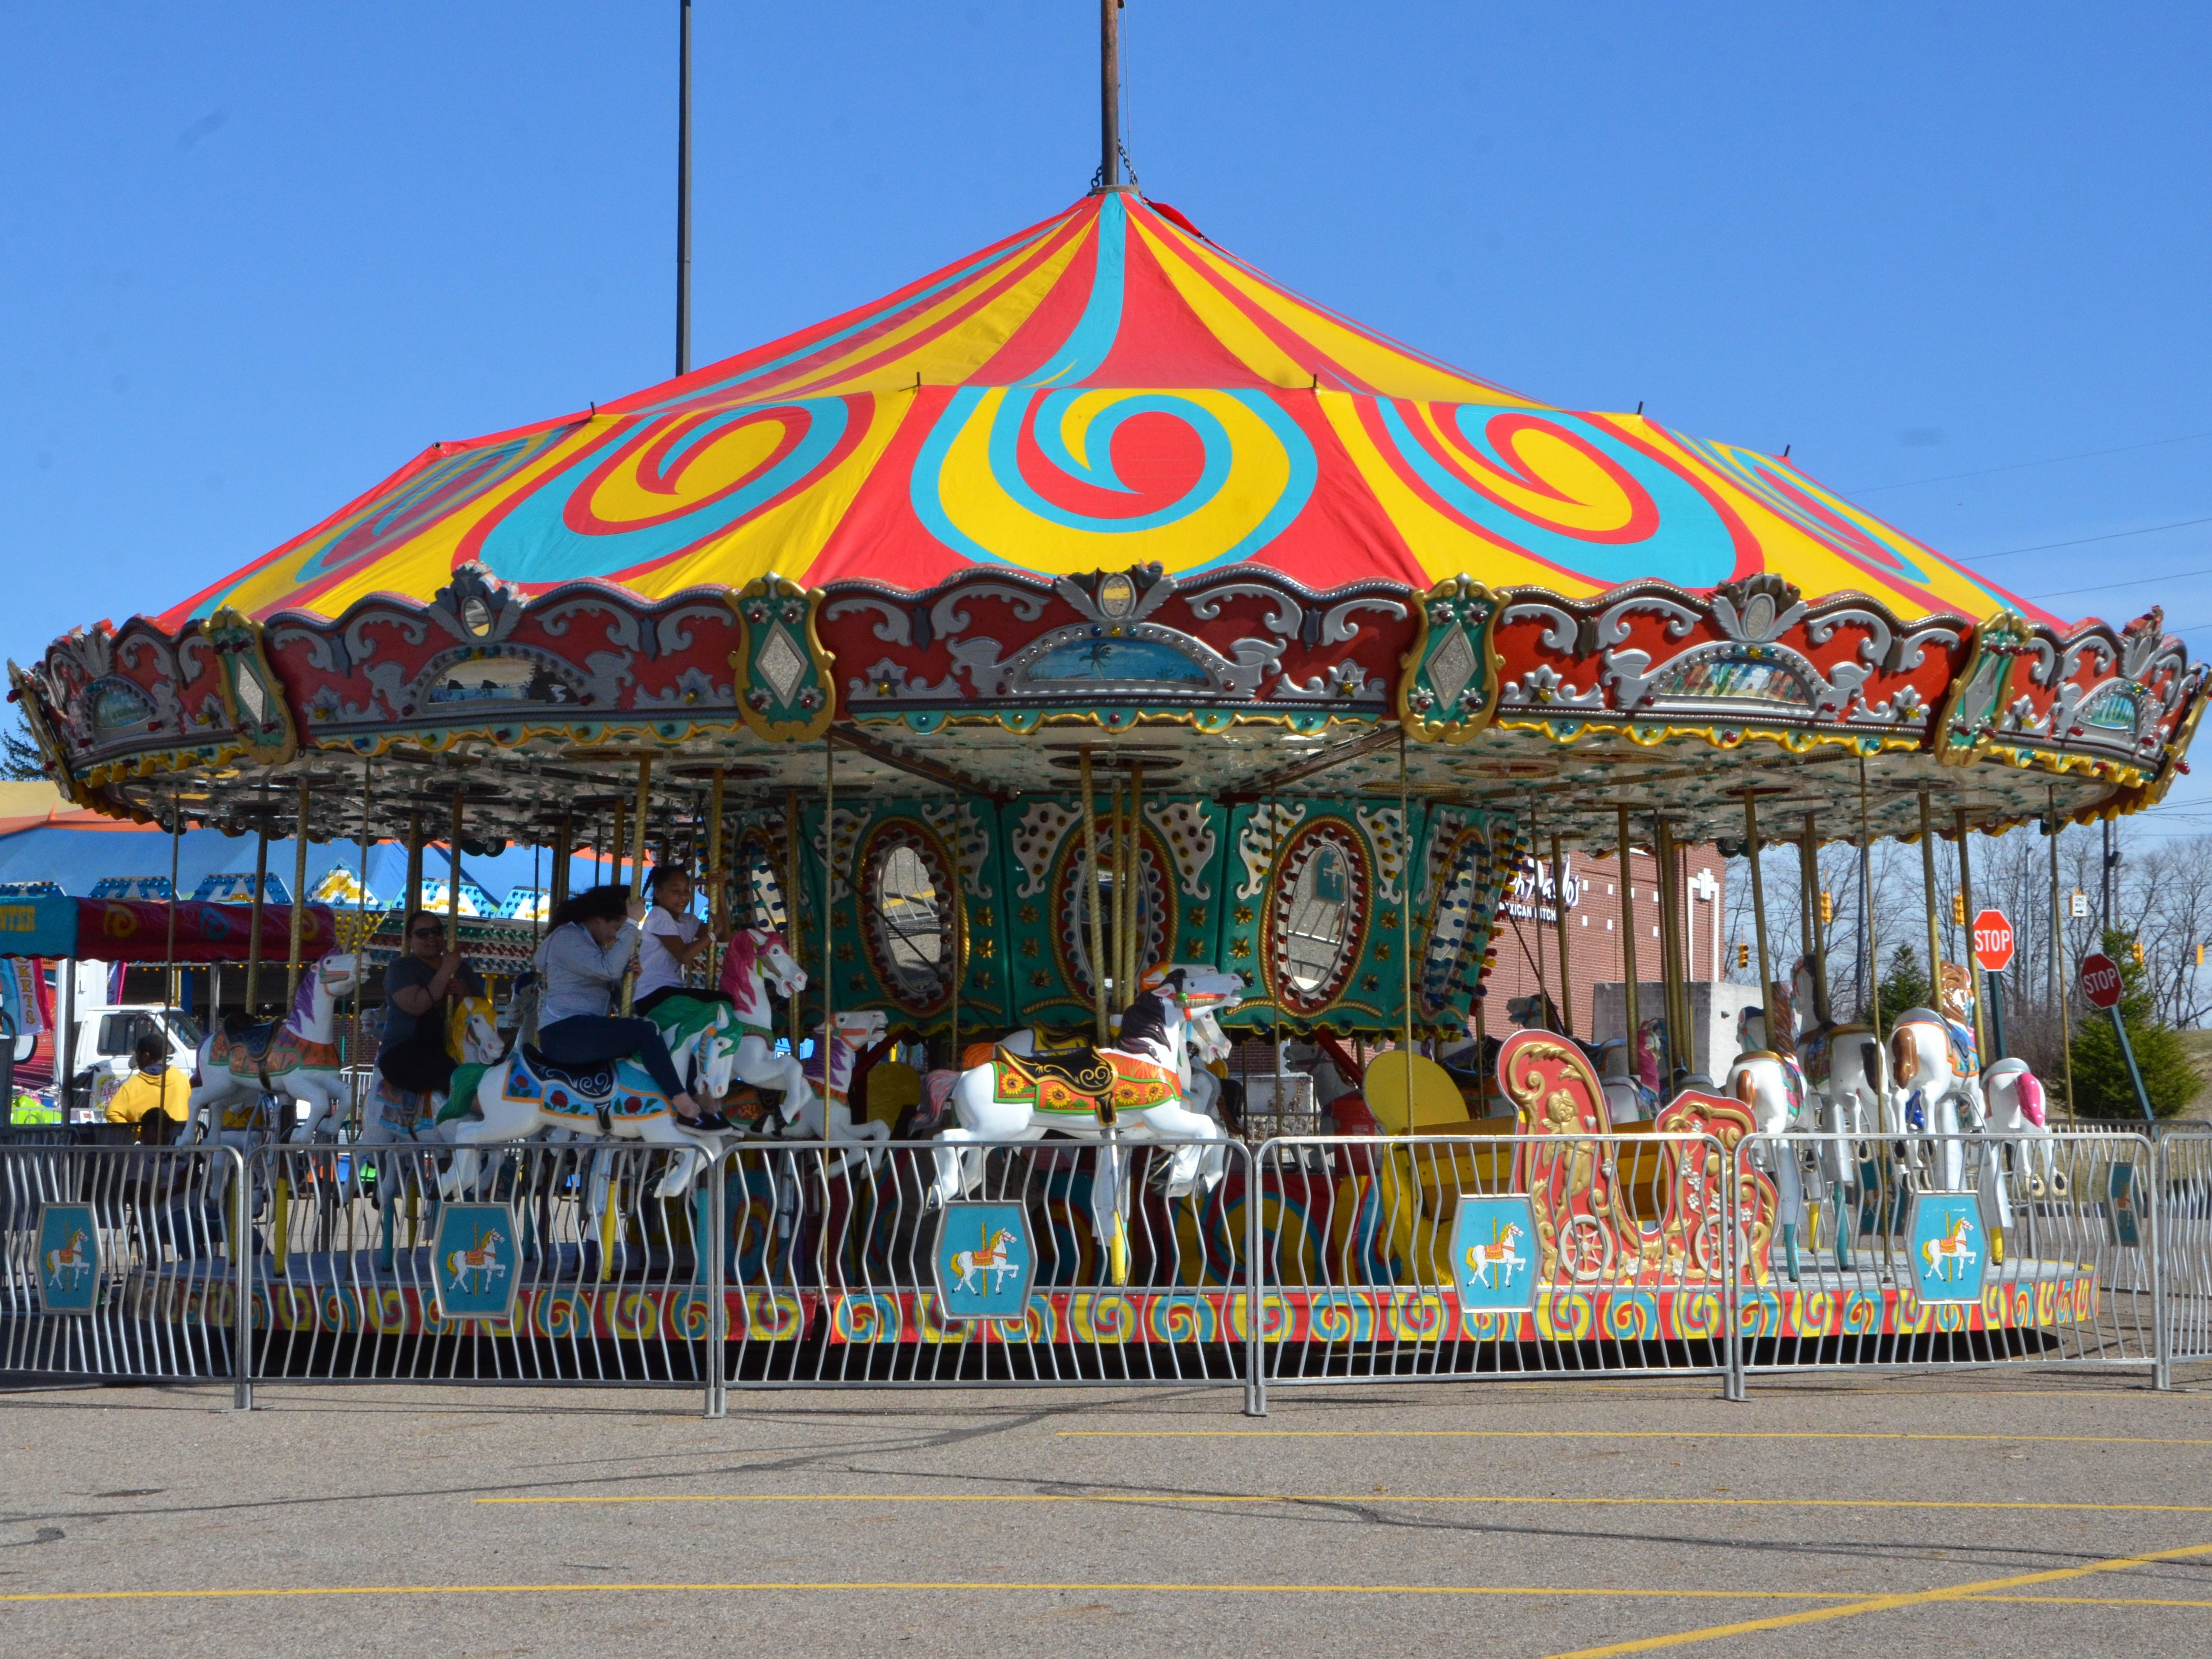 A merry-go-round in the parking lot of Lakeview Square Mall.